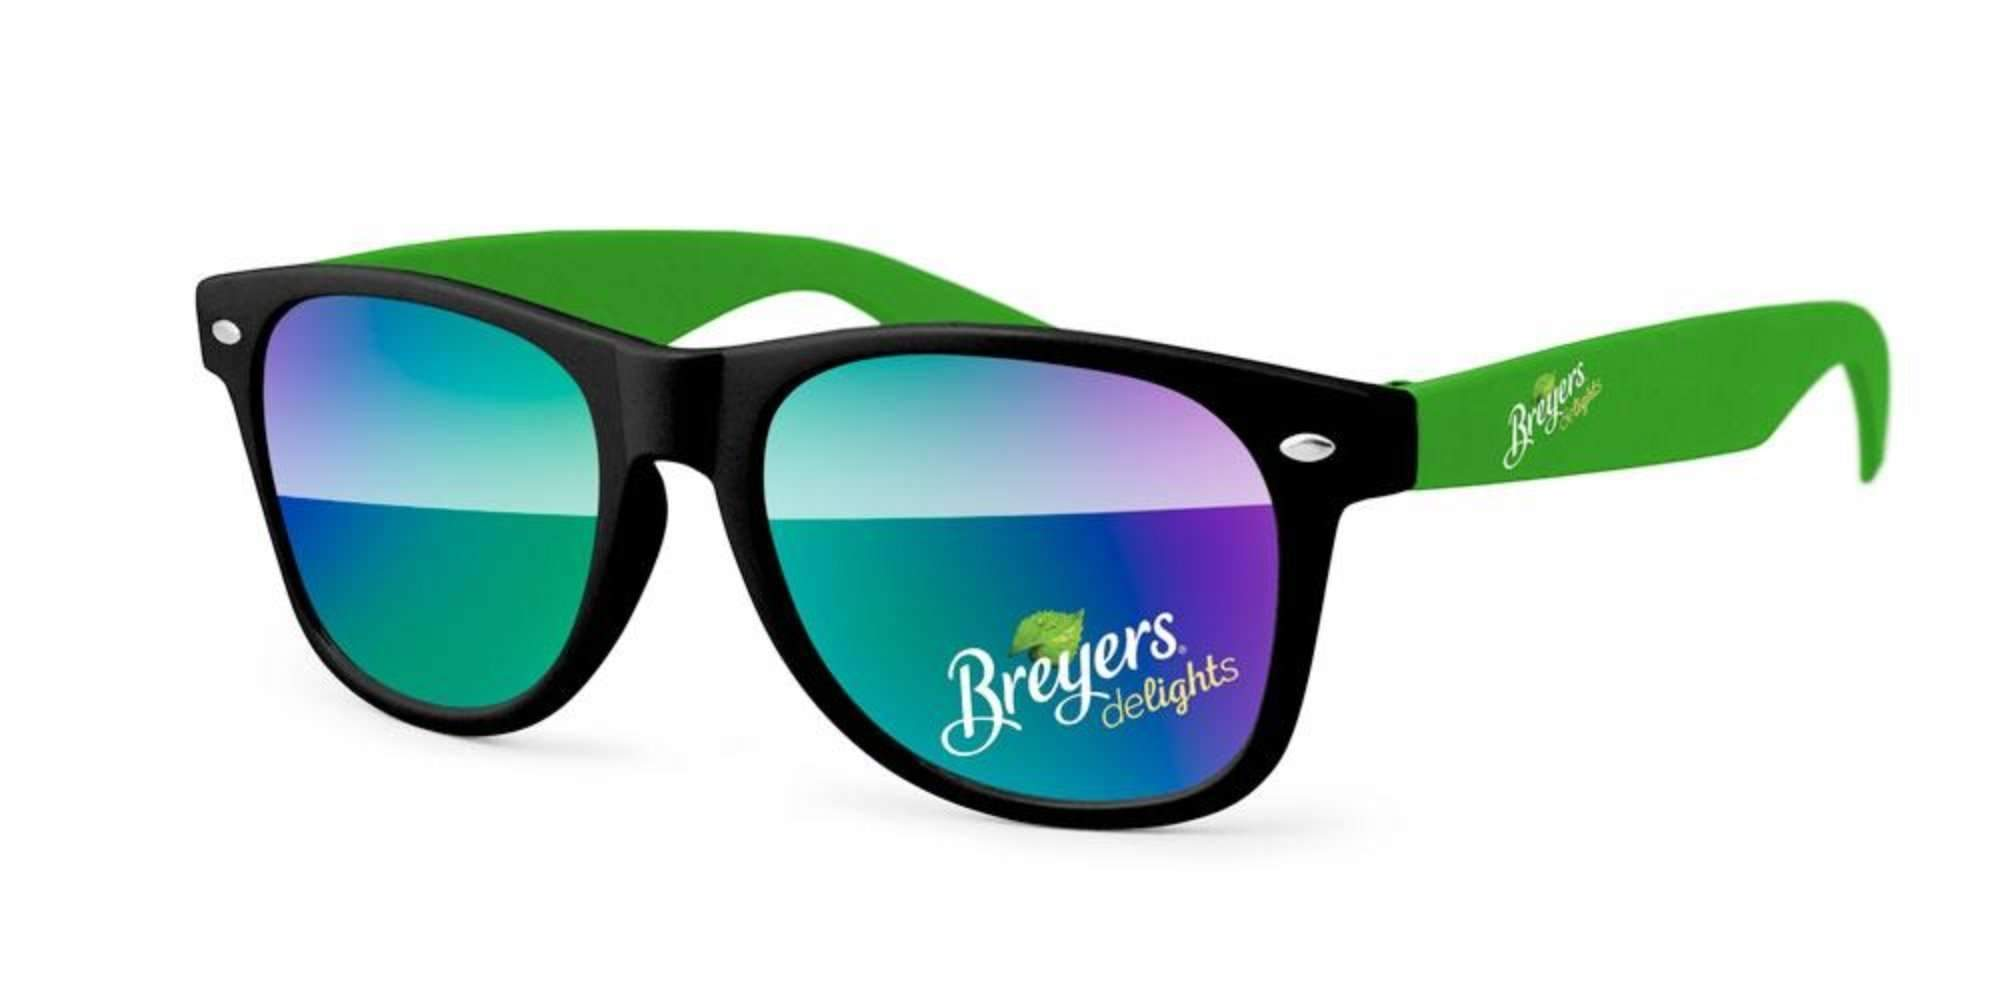 RM422 - 2-tone Retro Mirror Promotional Sunglasses w/ full-color lens & temple imprints